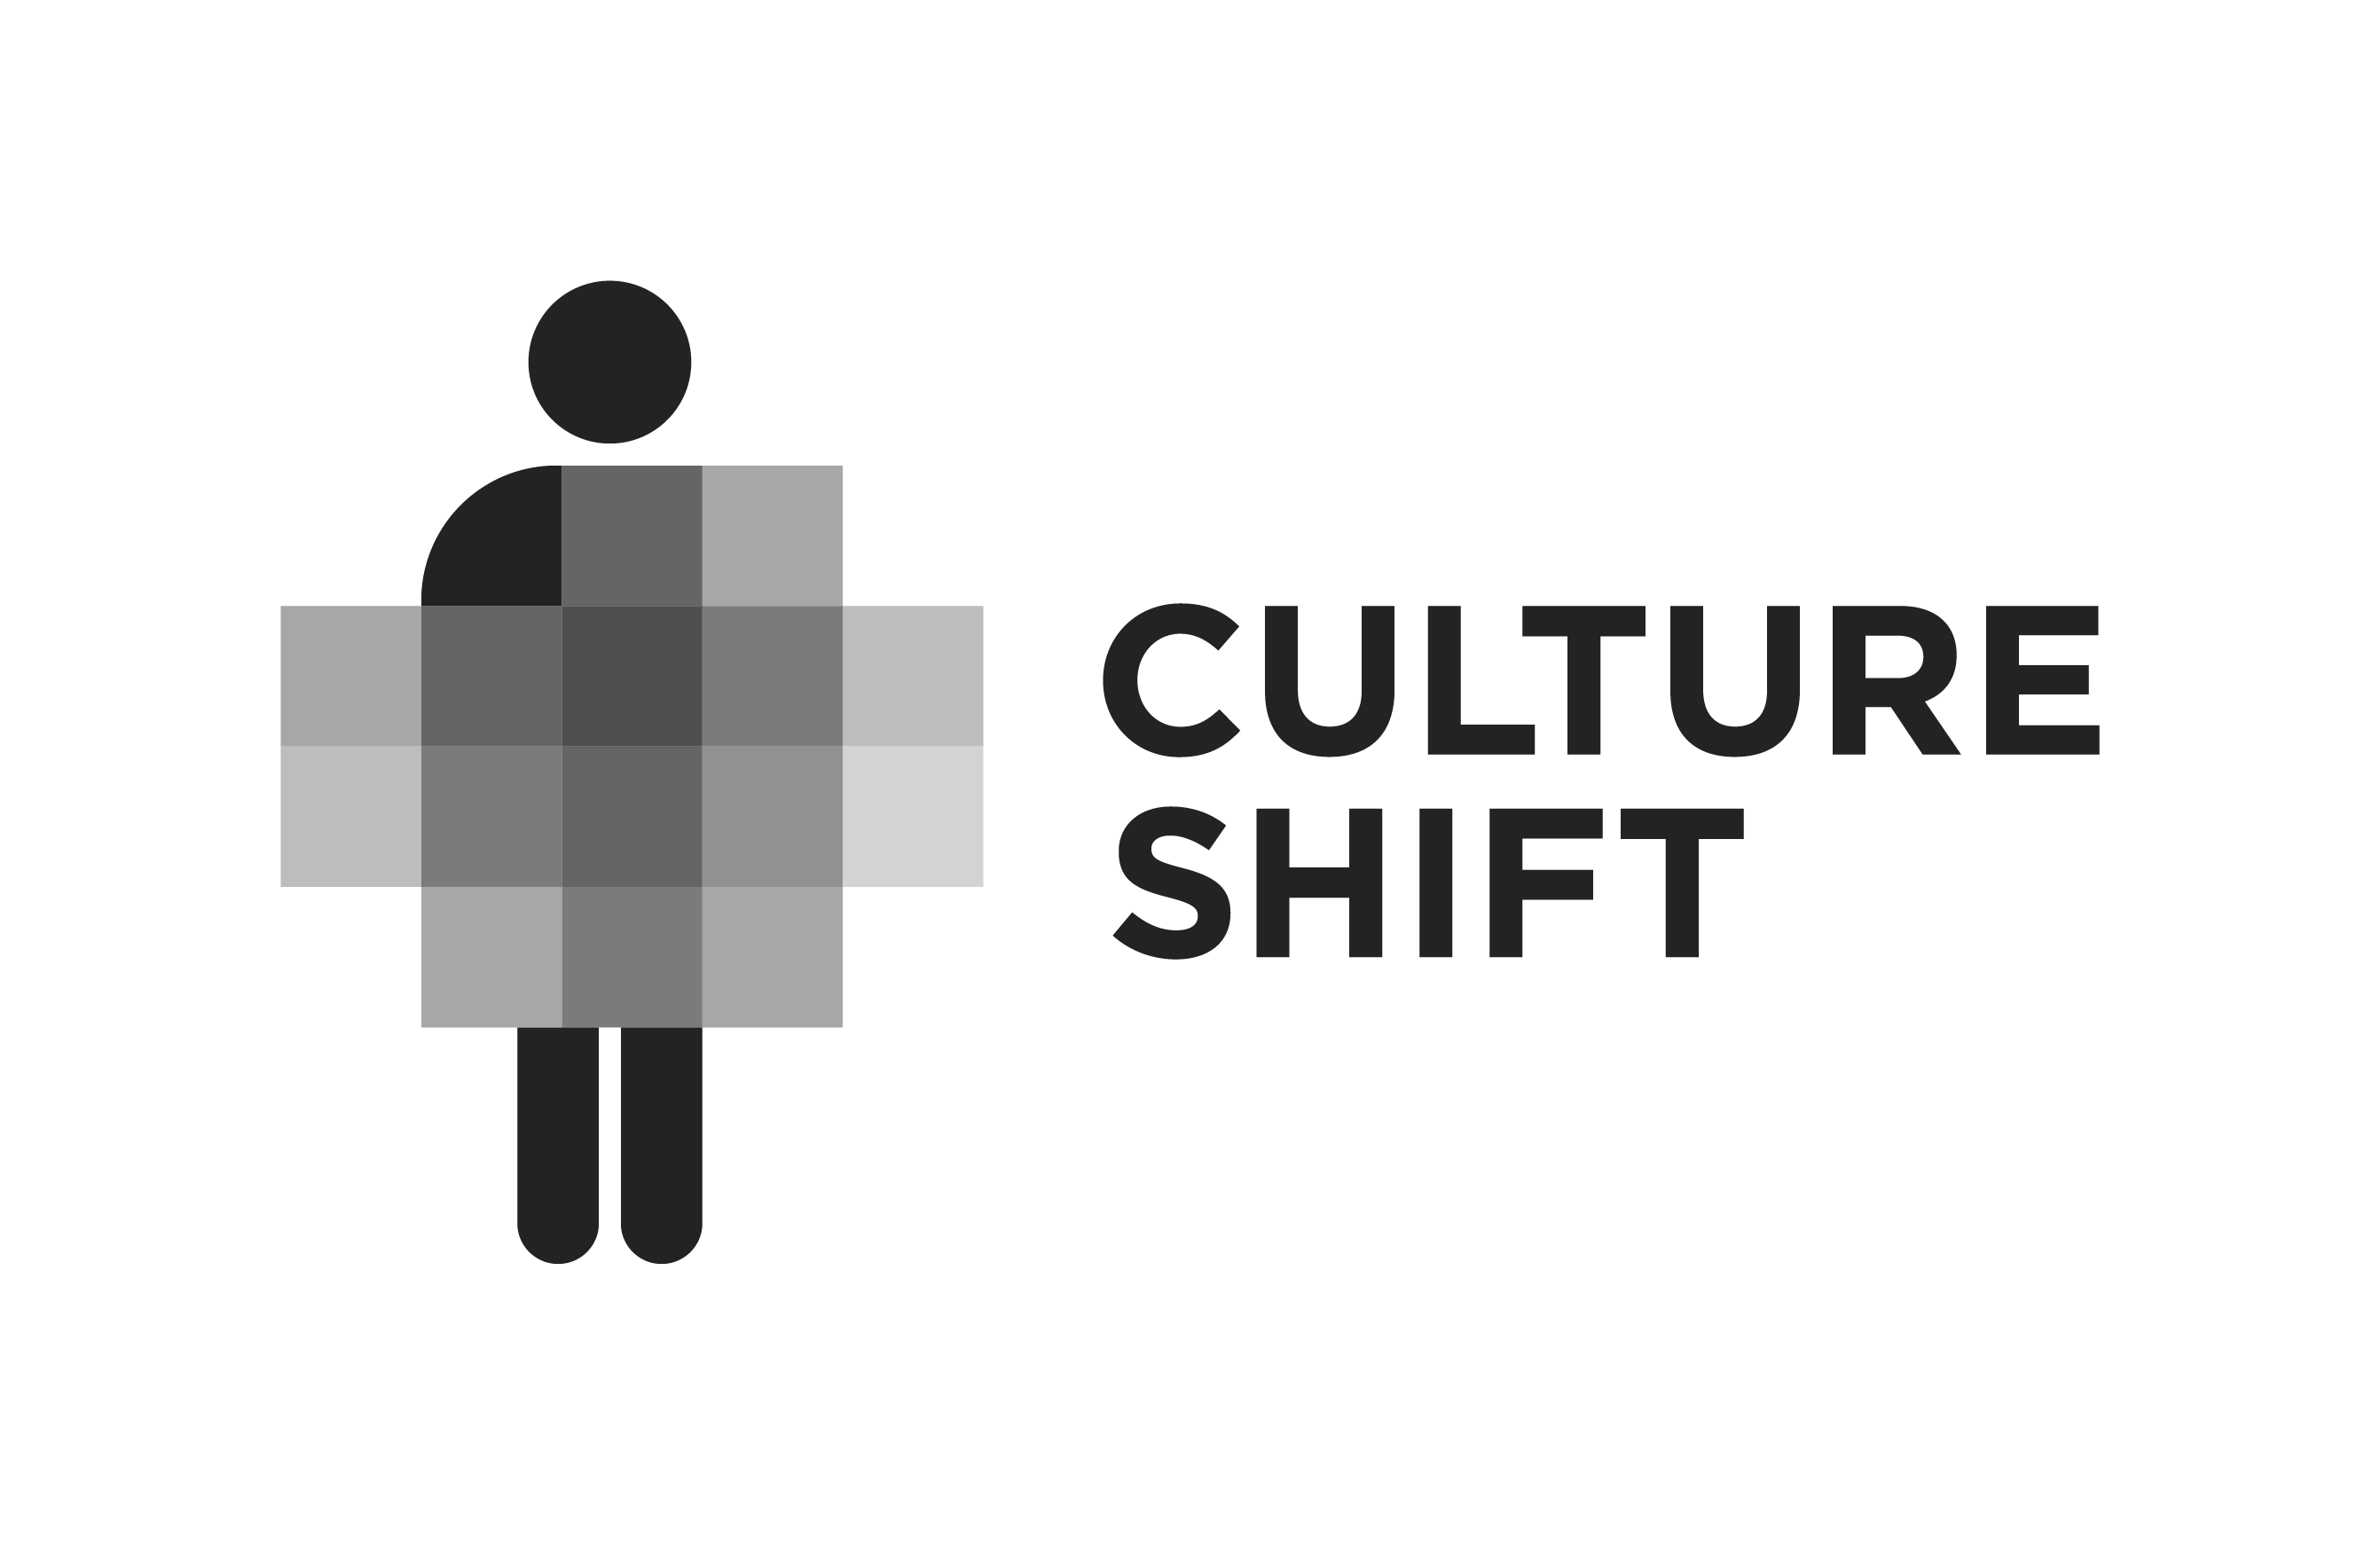 YWCA Culture Shift logo